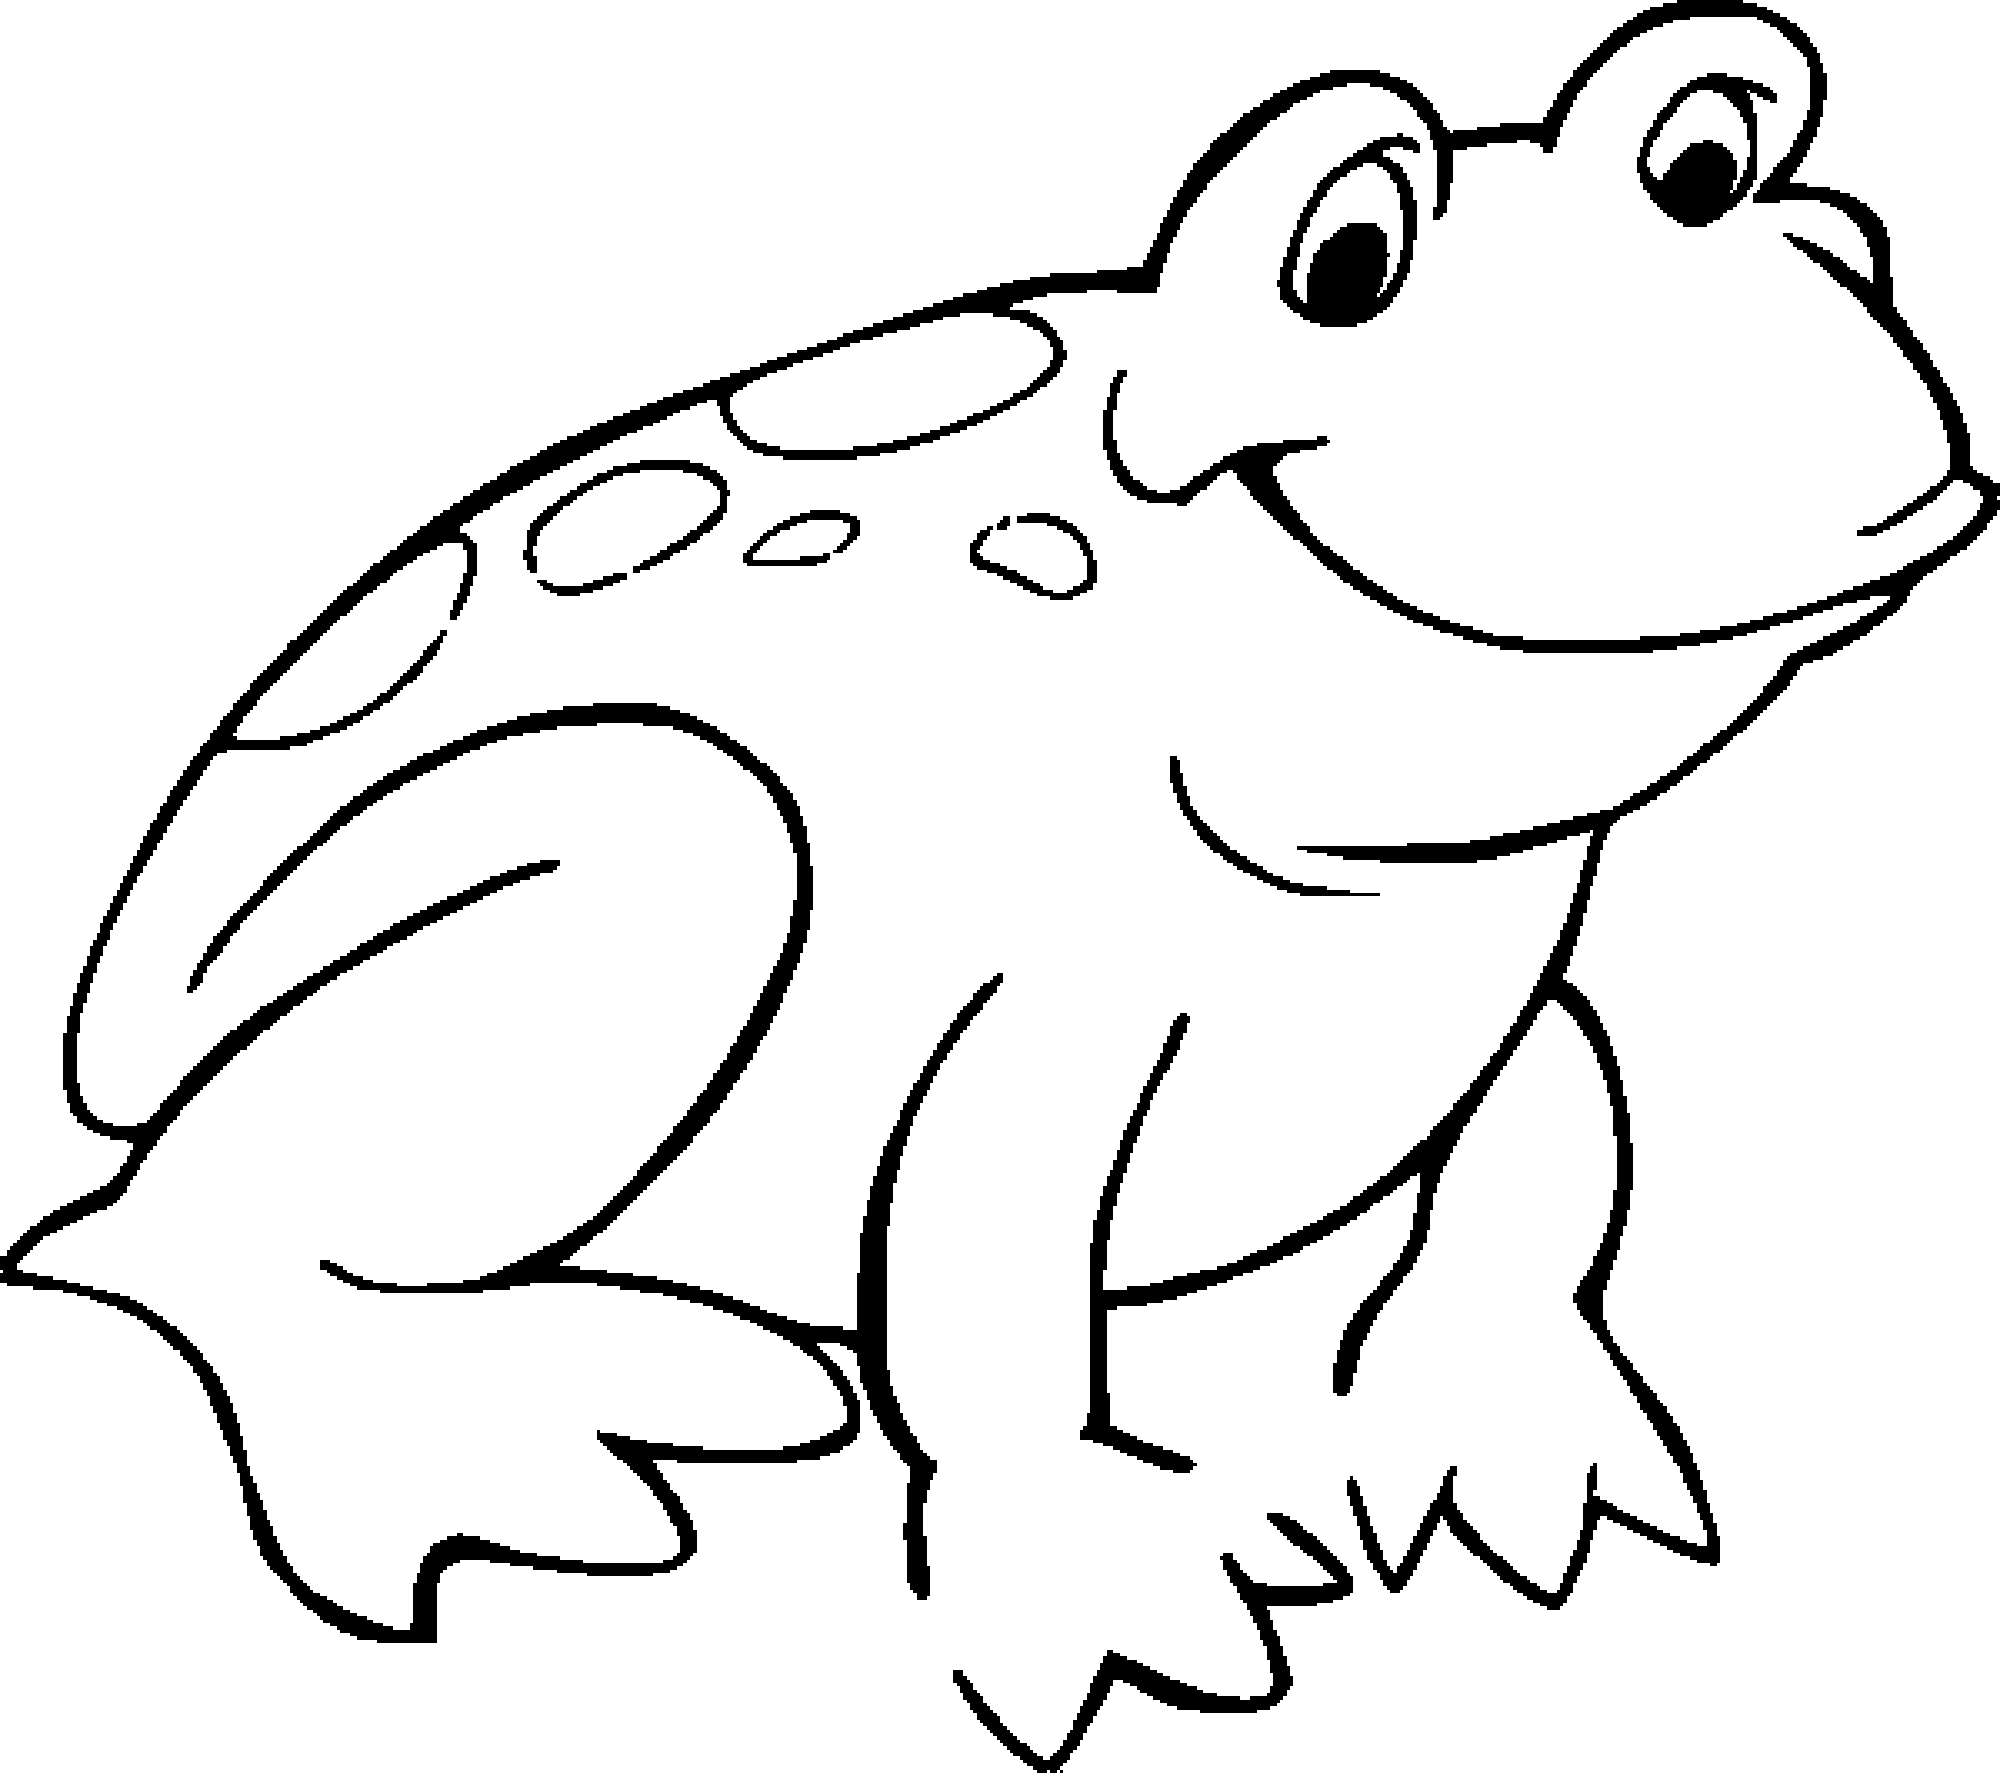 15 frog coloring pages - Print Color Craft